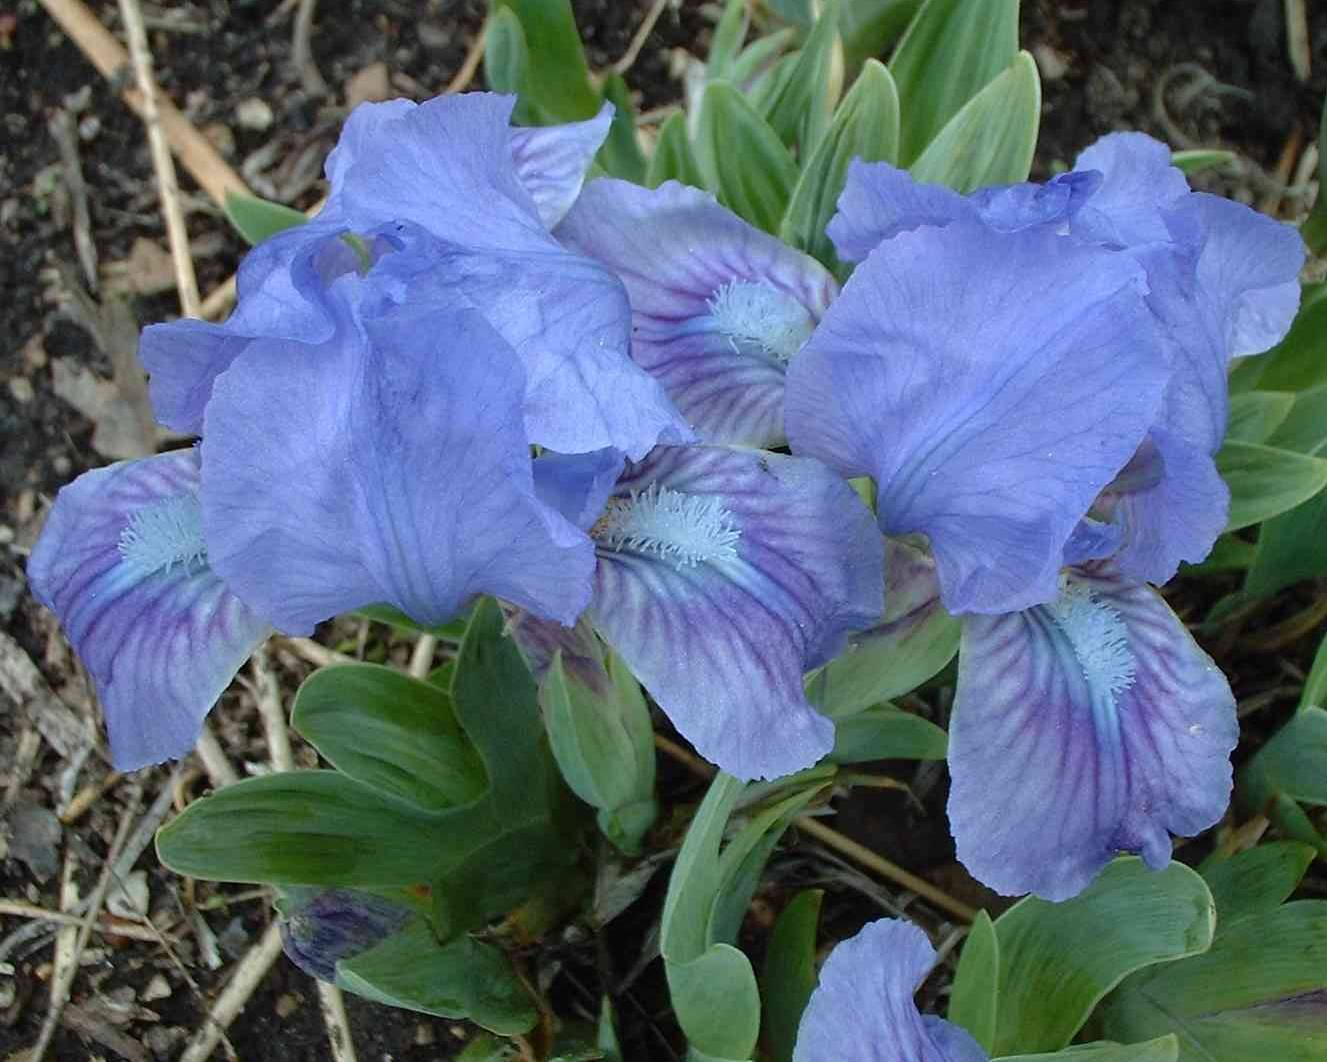 Dollhouse Irises